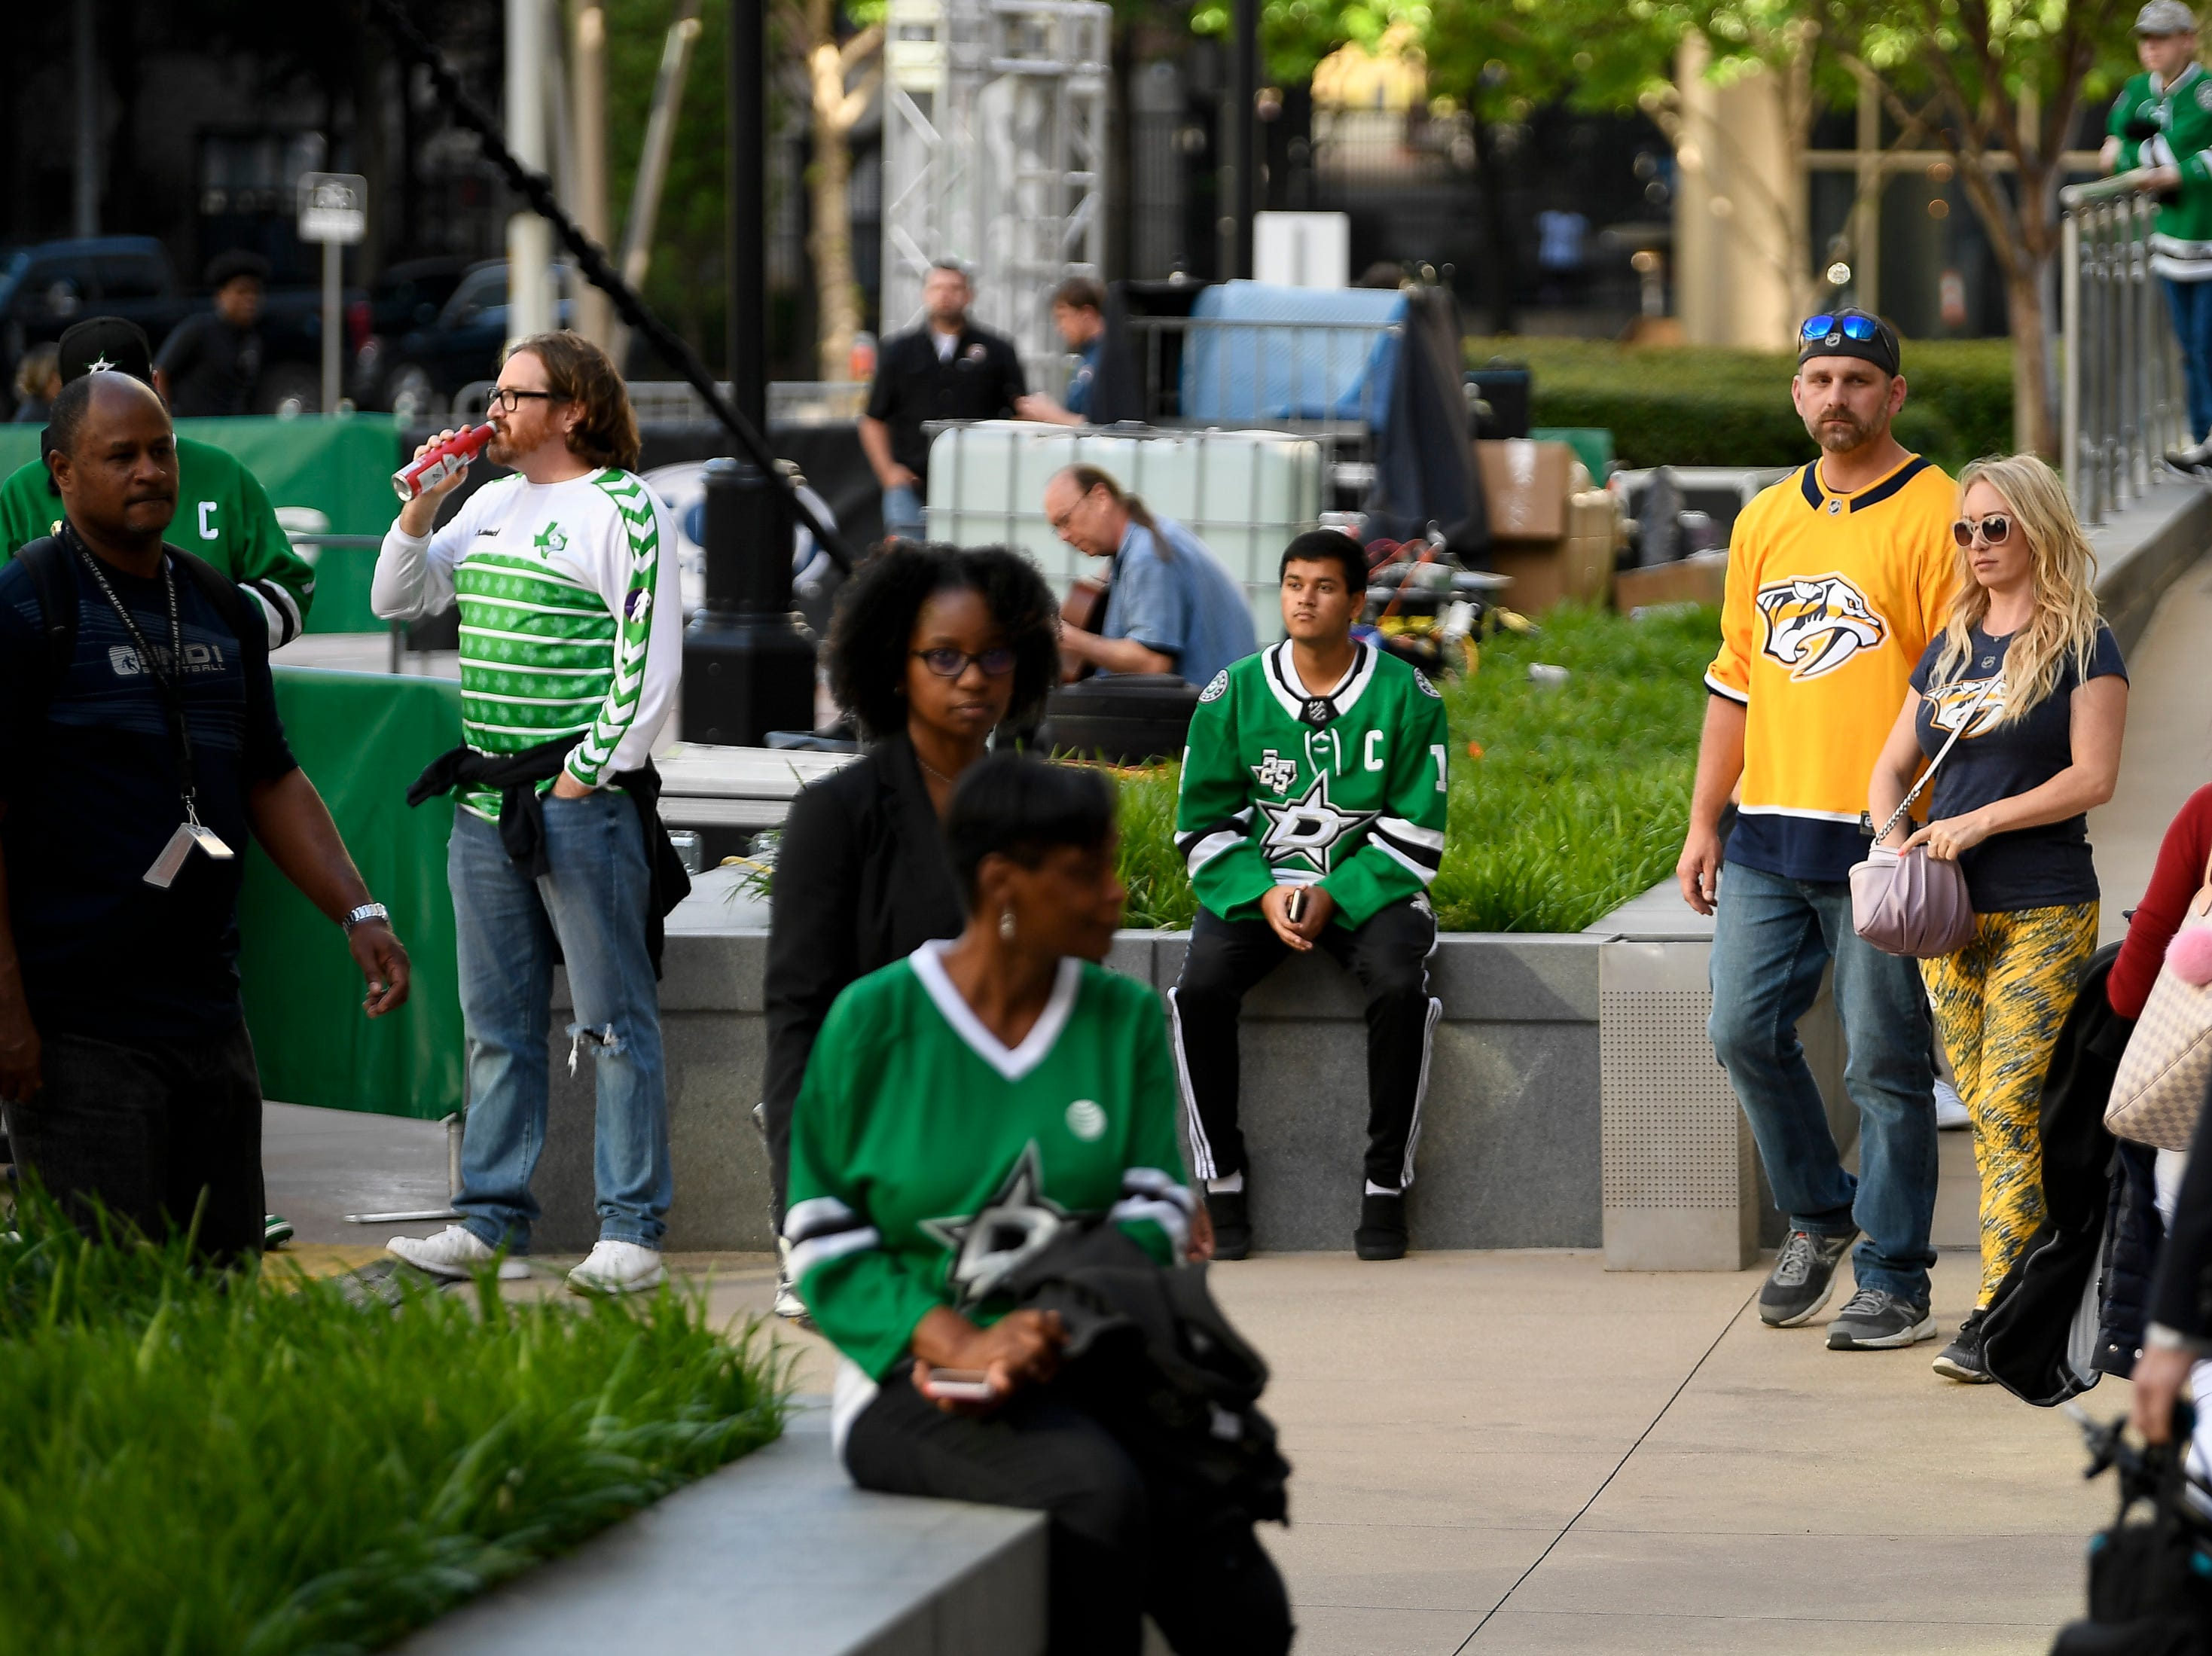 Predators fans Adam Jensen and Jennifer Reed, of San Antonio, Texas, arrive surrounded by Stars fans before the divisional semifinal game between the Dallas Stars and the Nashville Predators at the American Airlines Center in Dallas, Texas., Monday, April 15, 2019.